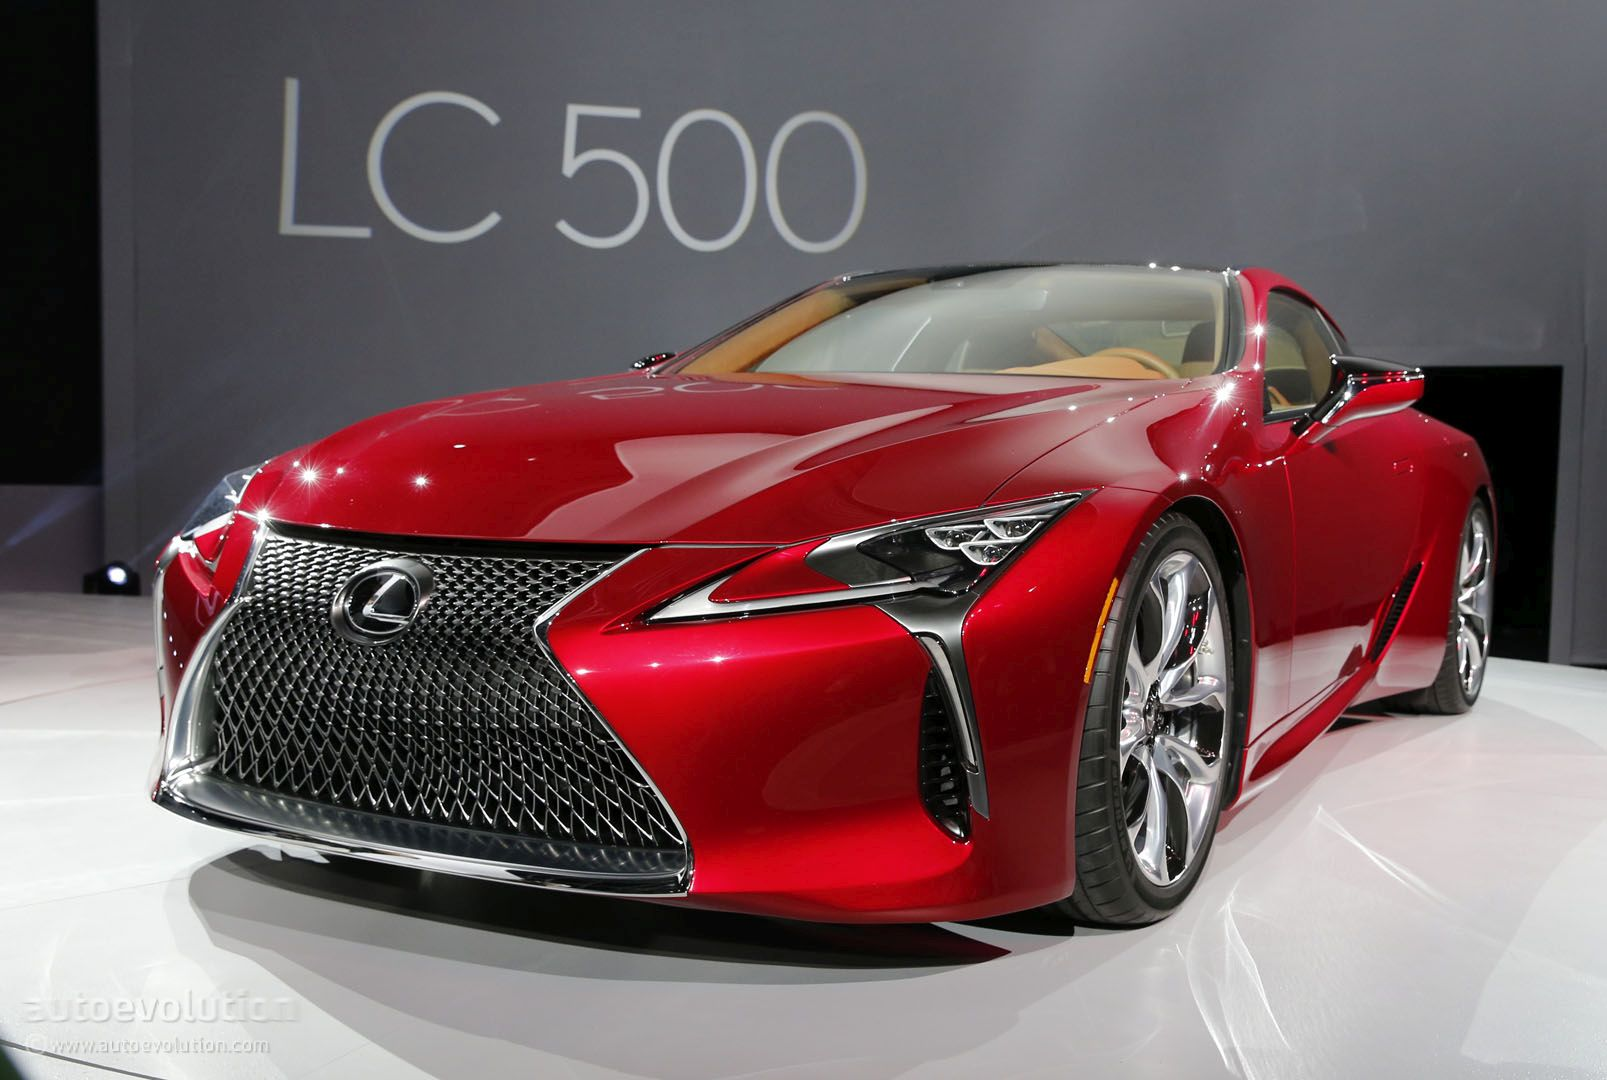 2017 lexus lc 500 hunts down mercedes s class coupe in detroit autoevolution. Black Bedroom Furniture Sets. Home Design Ideas